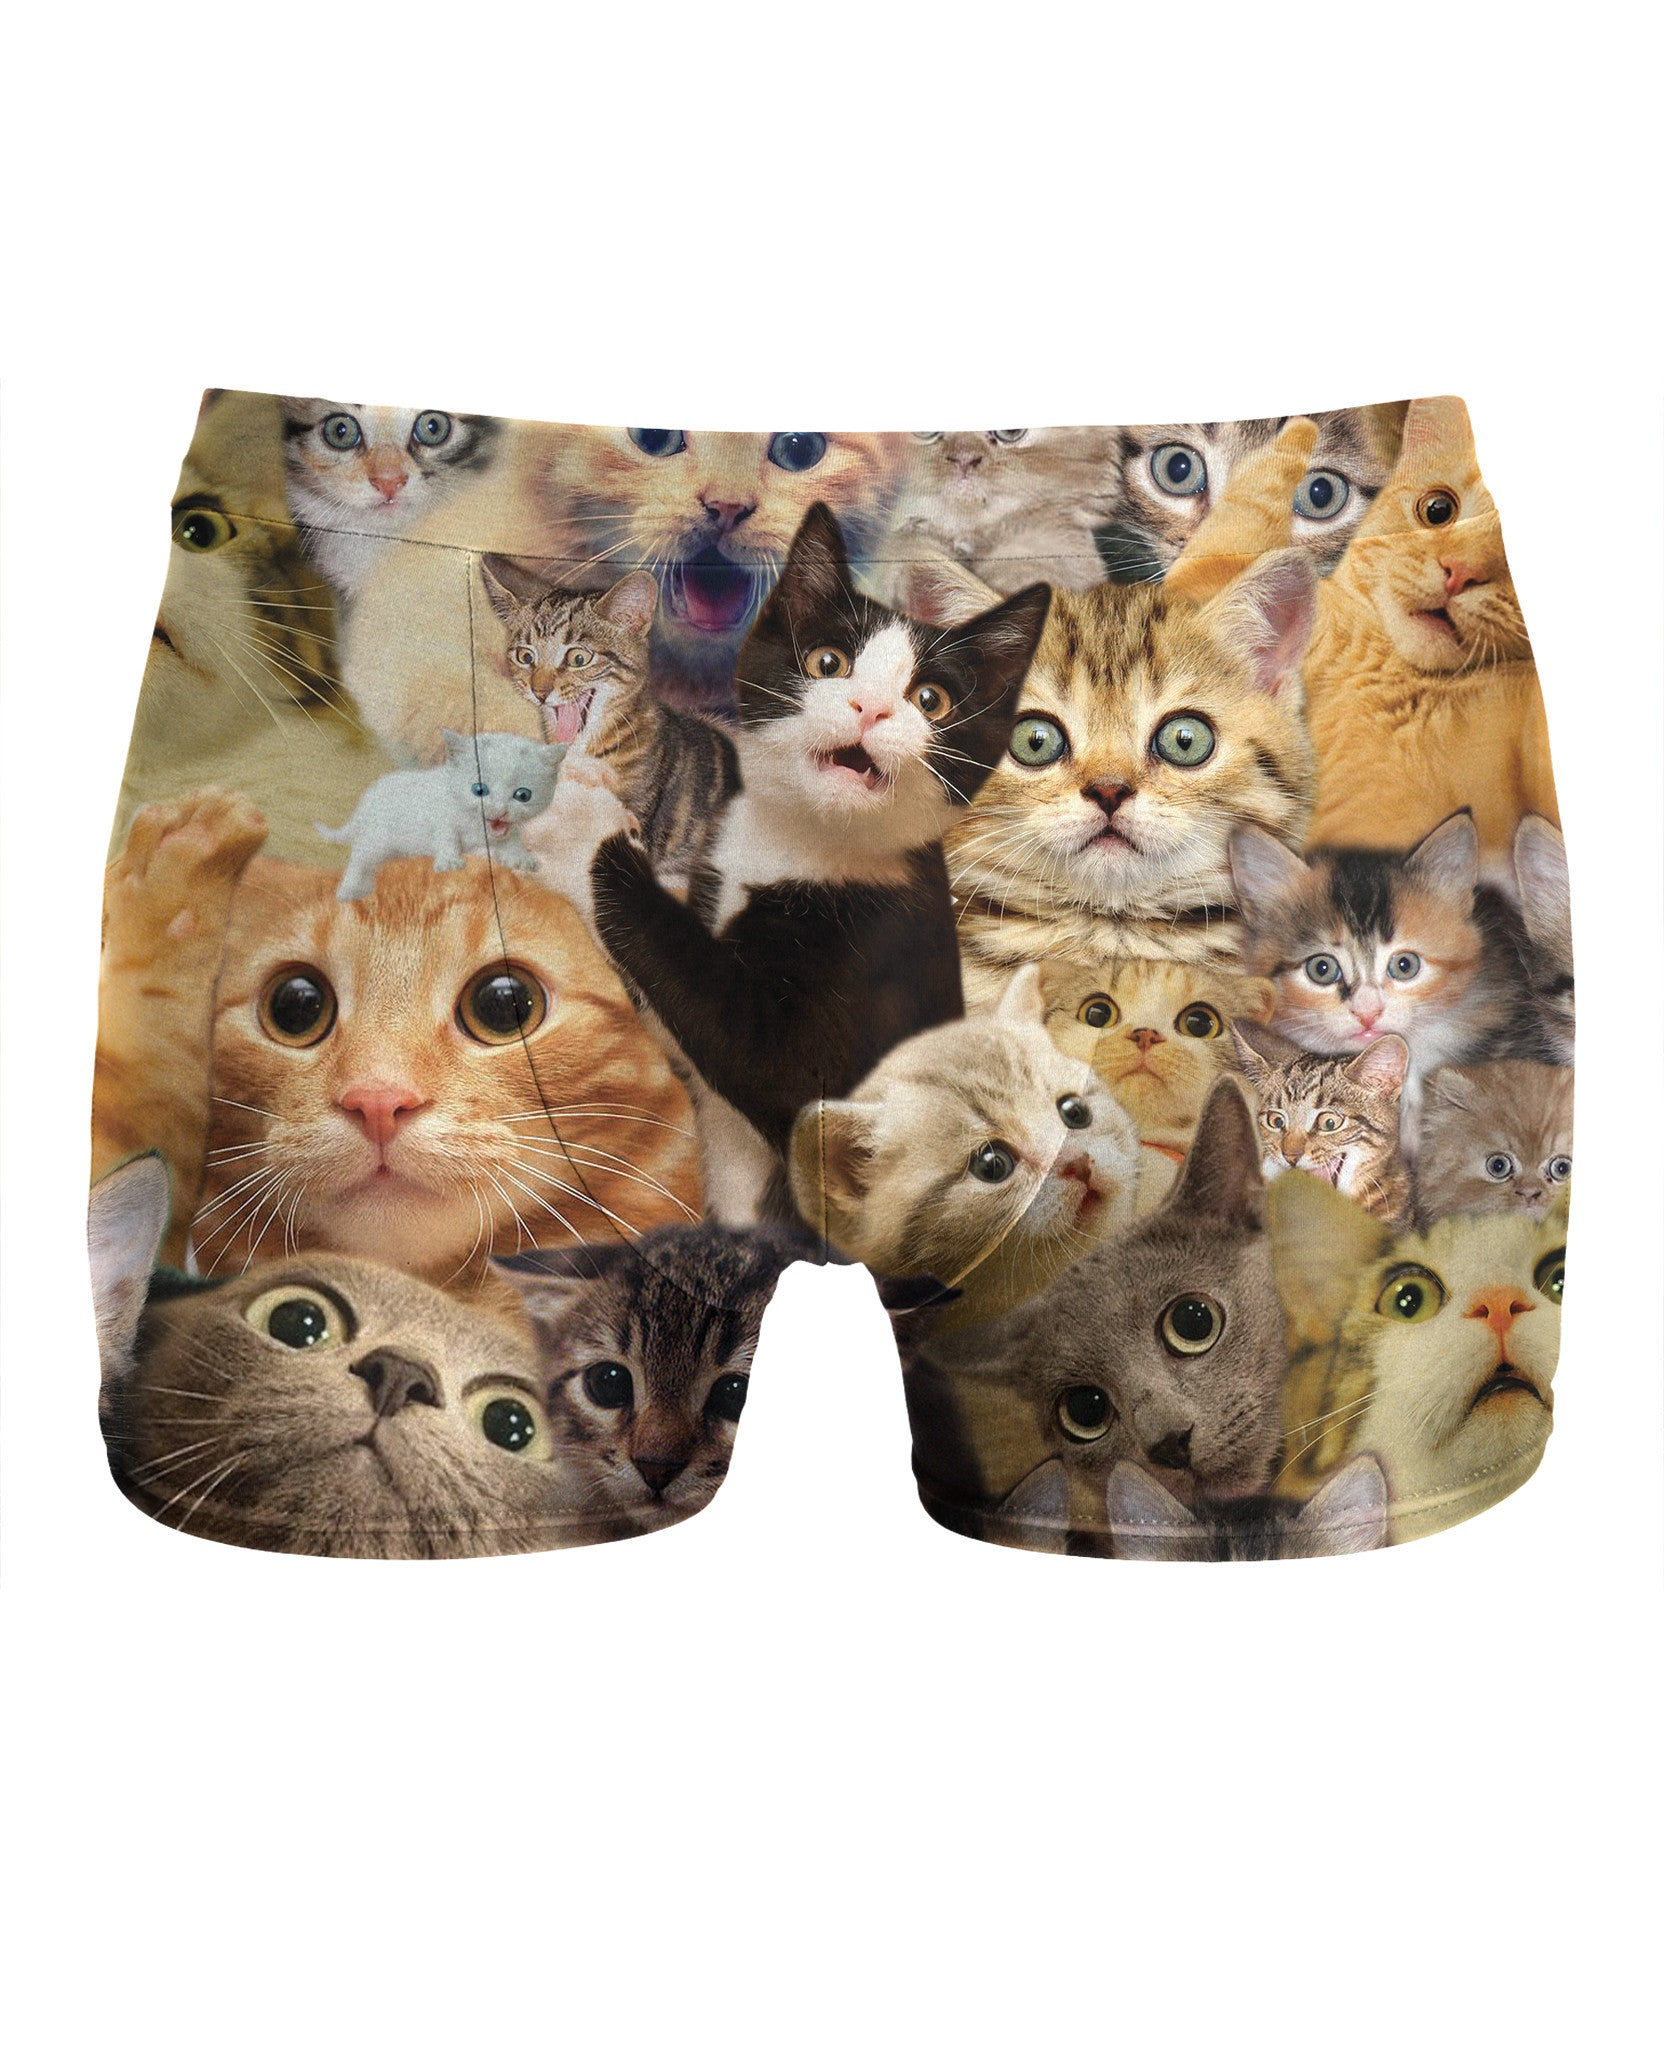 Surprised Cats Underwear